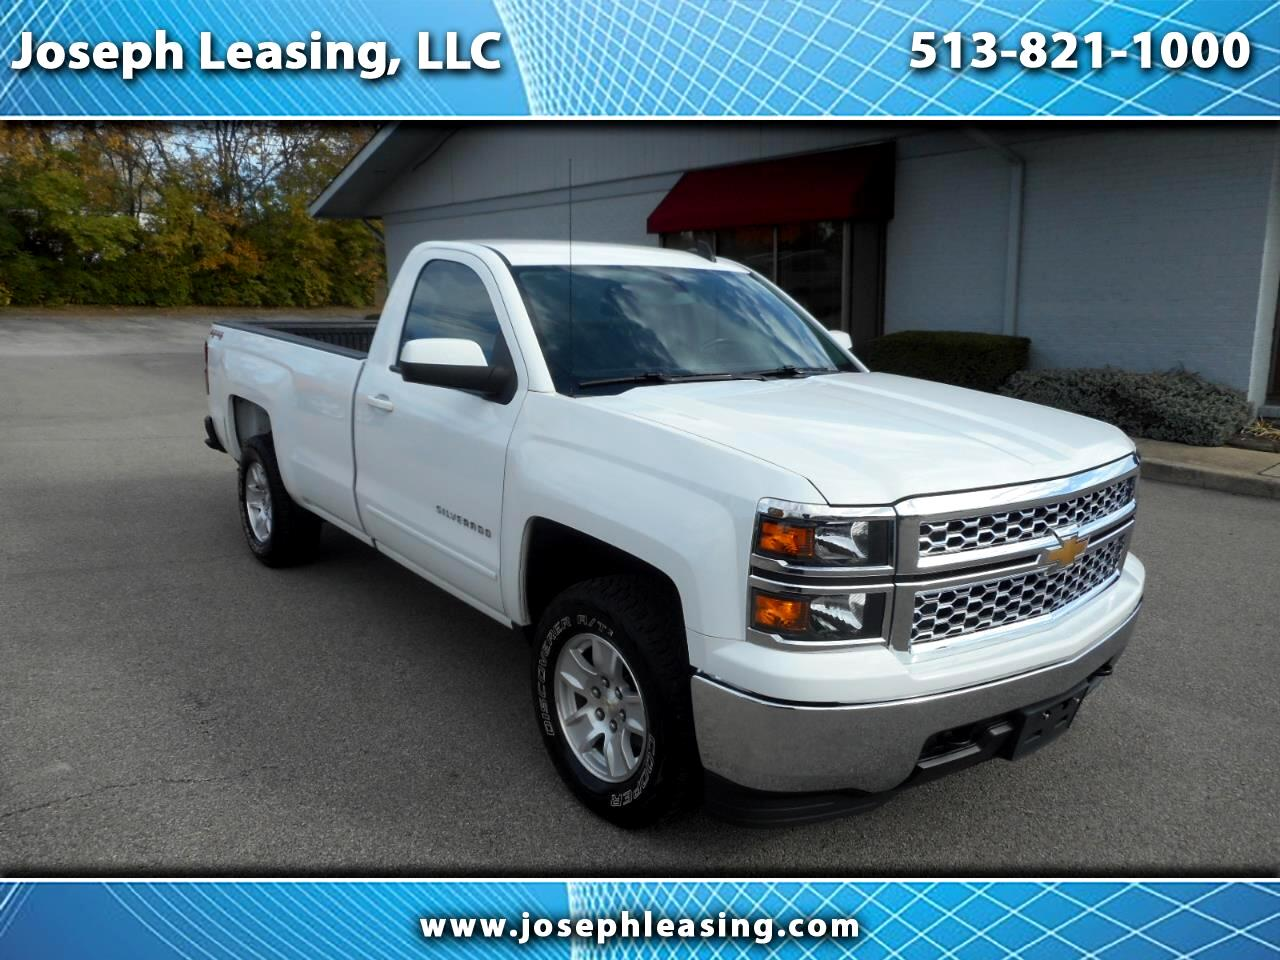 2015 Chevrolet Silverado 1500 LT Long Box 4WD